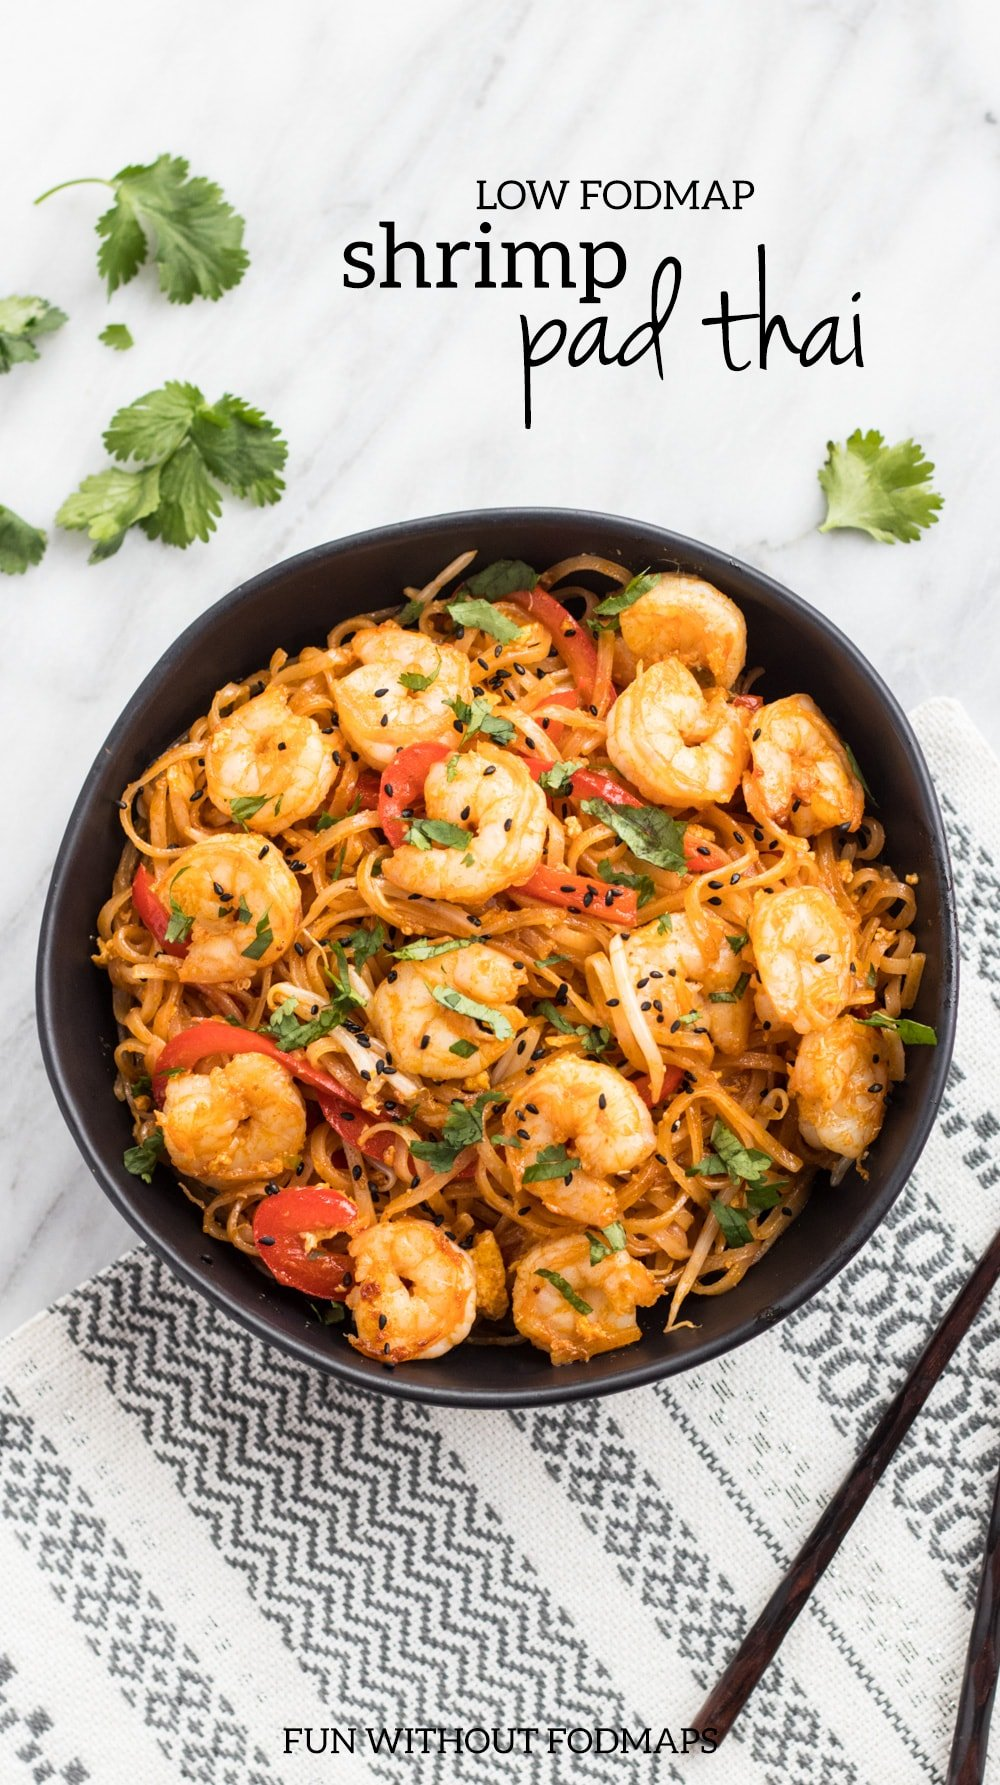 """Low FODMAP shrimp pad thai in a black bowl on a white marble background. Black text reads """"low FODMAP shrimp pad thai"""" in the upper right corner."""